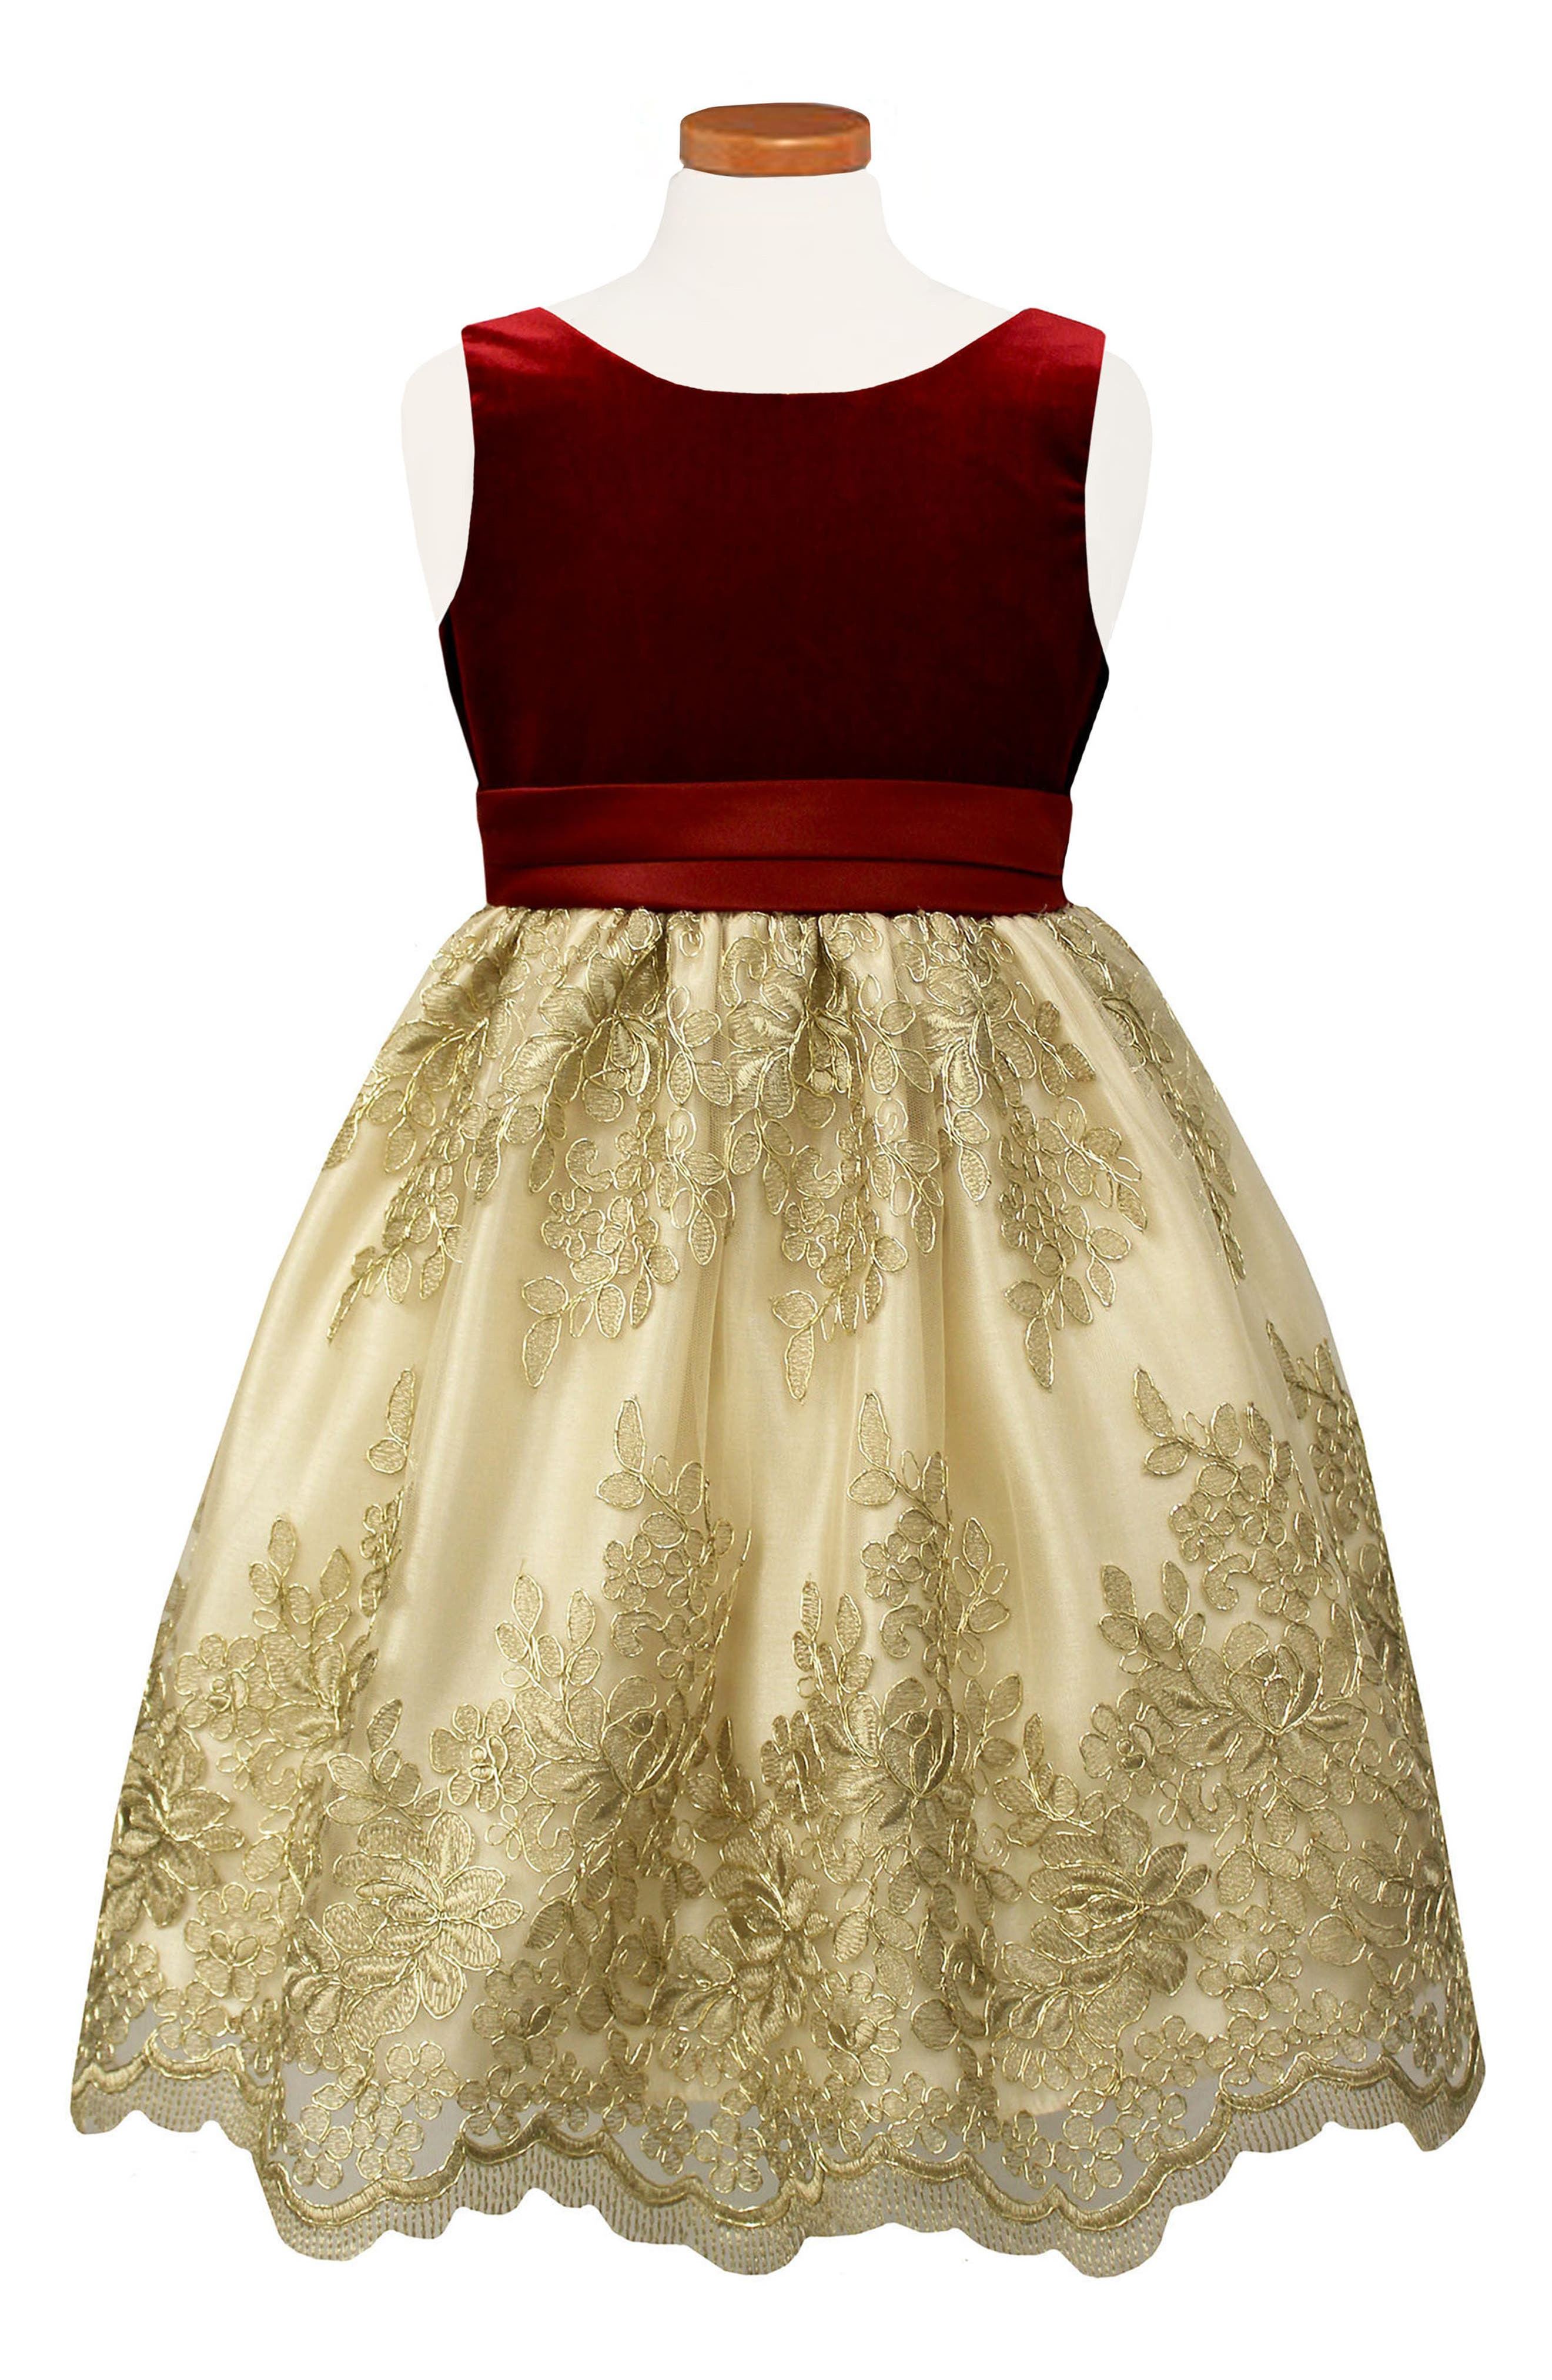 Main Image - Sorbet Floral Embroidered Party Dress (Big Girls)